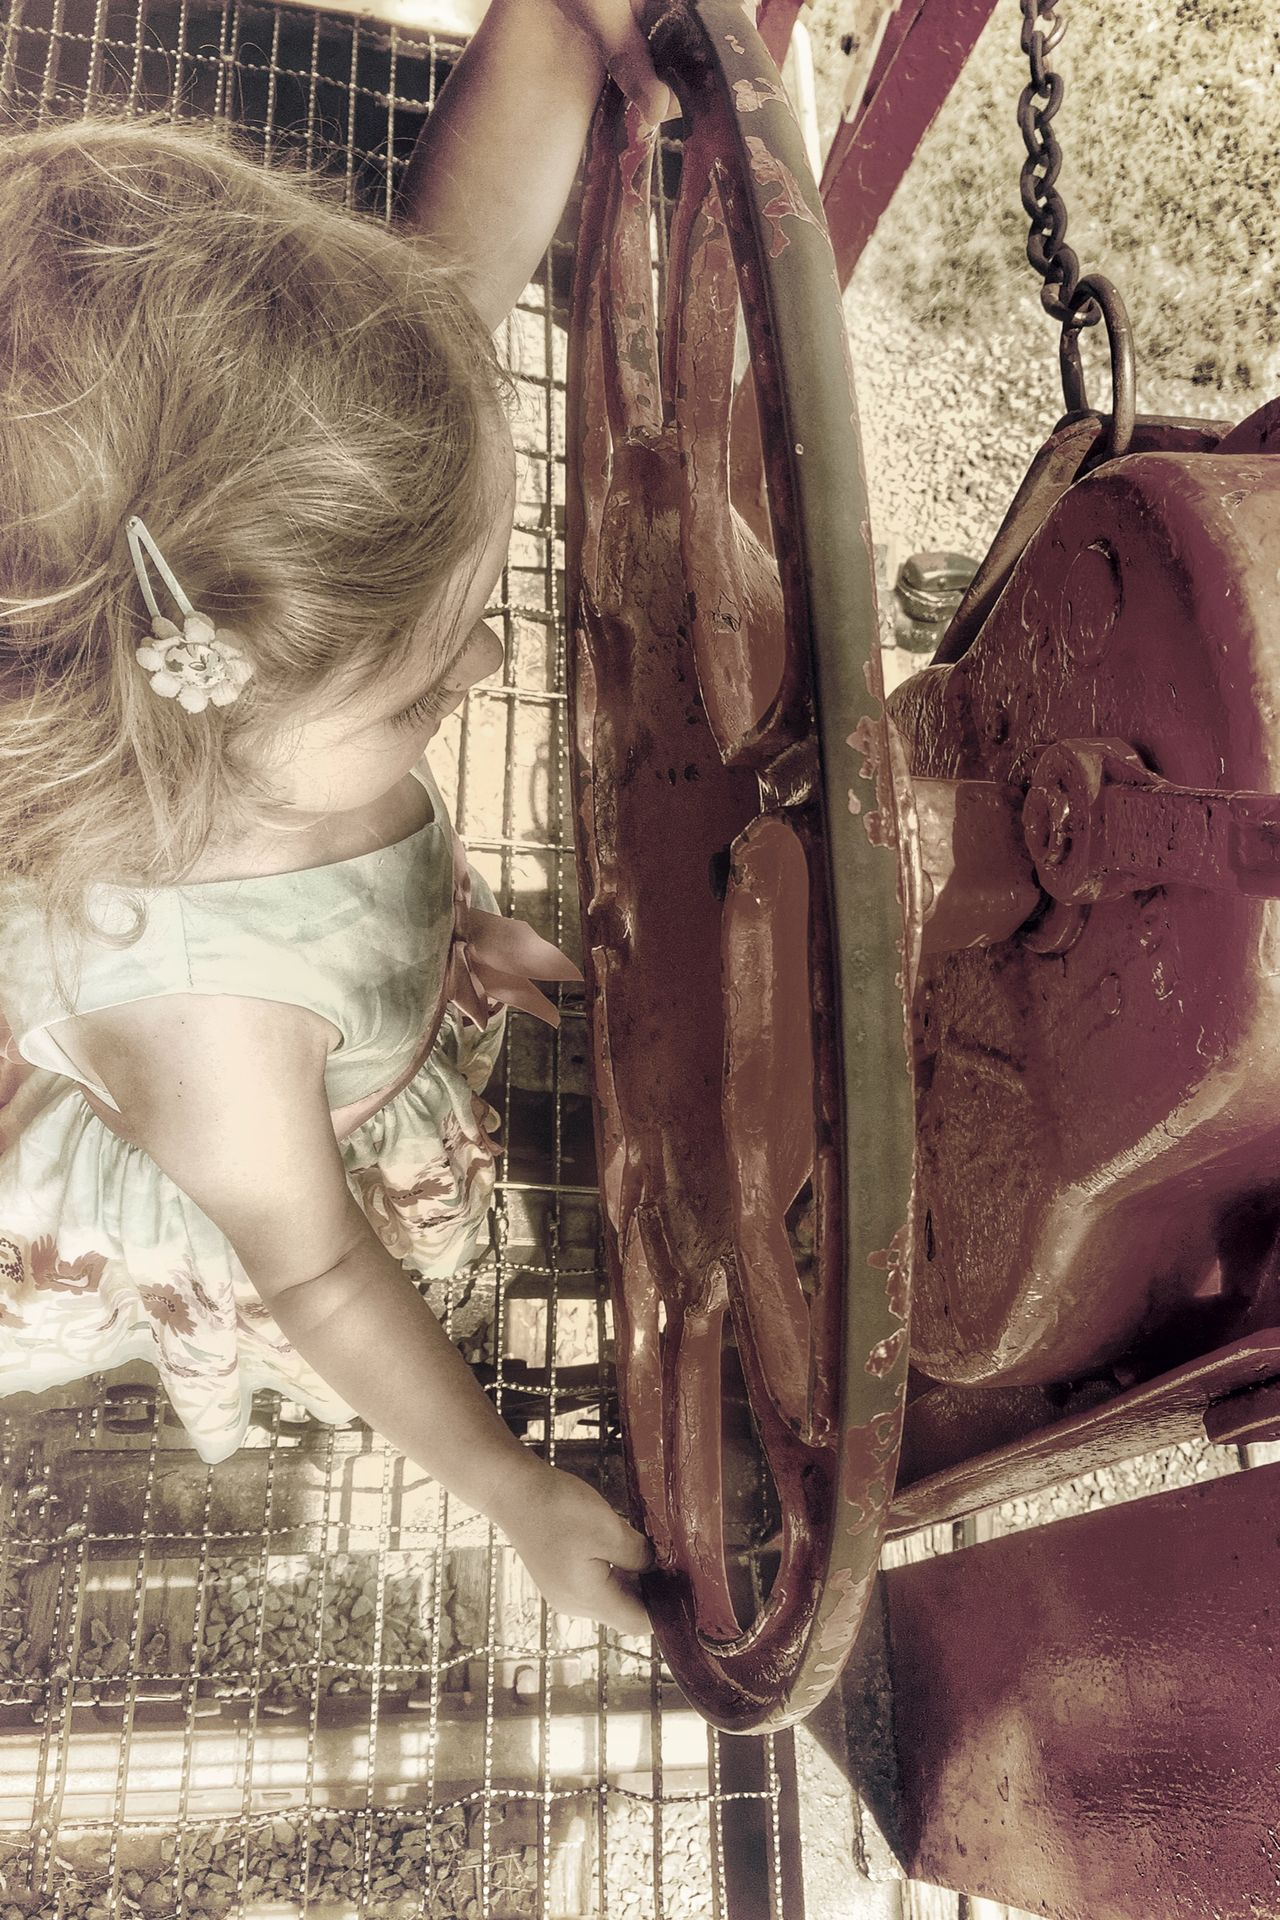 Little driver applies the train brakes Train Caboose Brakes Being A Kid The Portraitist - 2015 EyeEm Awards Girl Kids Being Kids People Peoplephotography Open Edit For Everyone